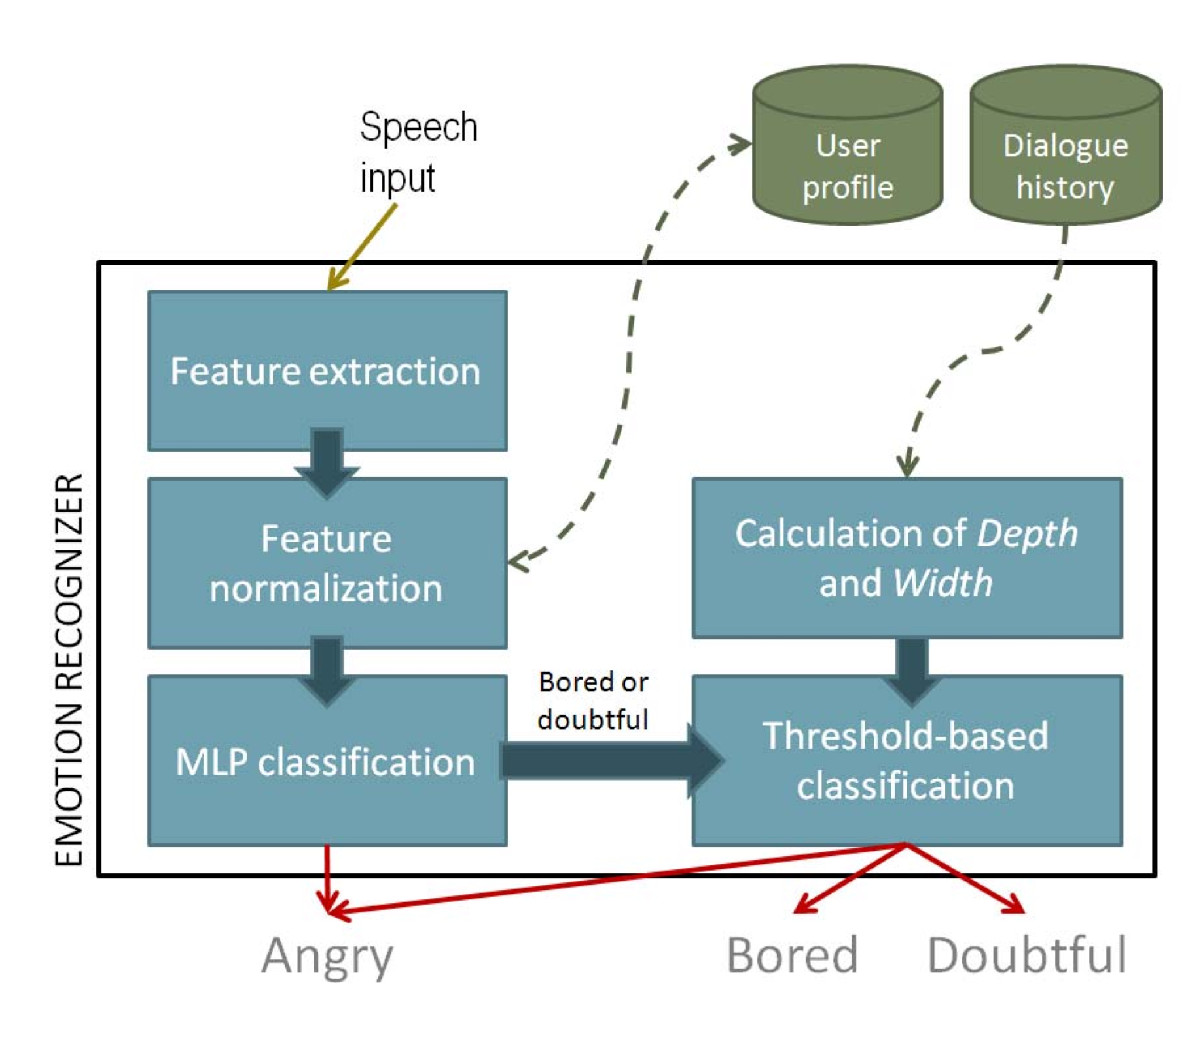 http://static-content.springer.com/image/art%3A10.1186%2F1687-6180-2011-6/MediaObjects/13634_2010_Article_4_Fig2_HTML.jpg